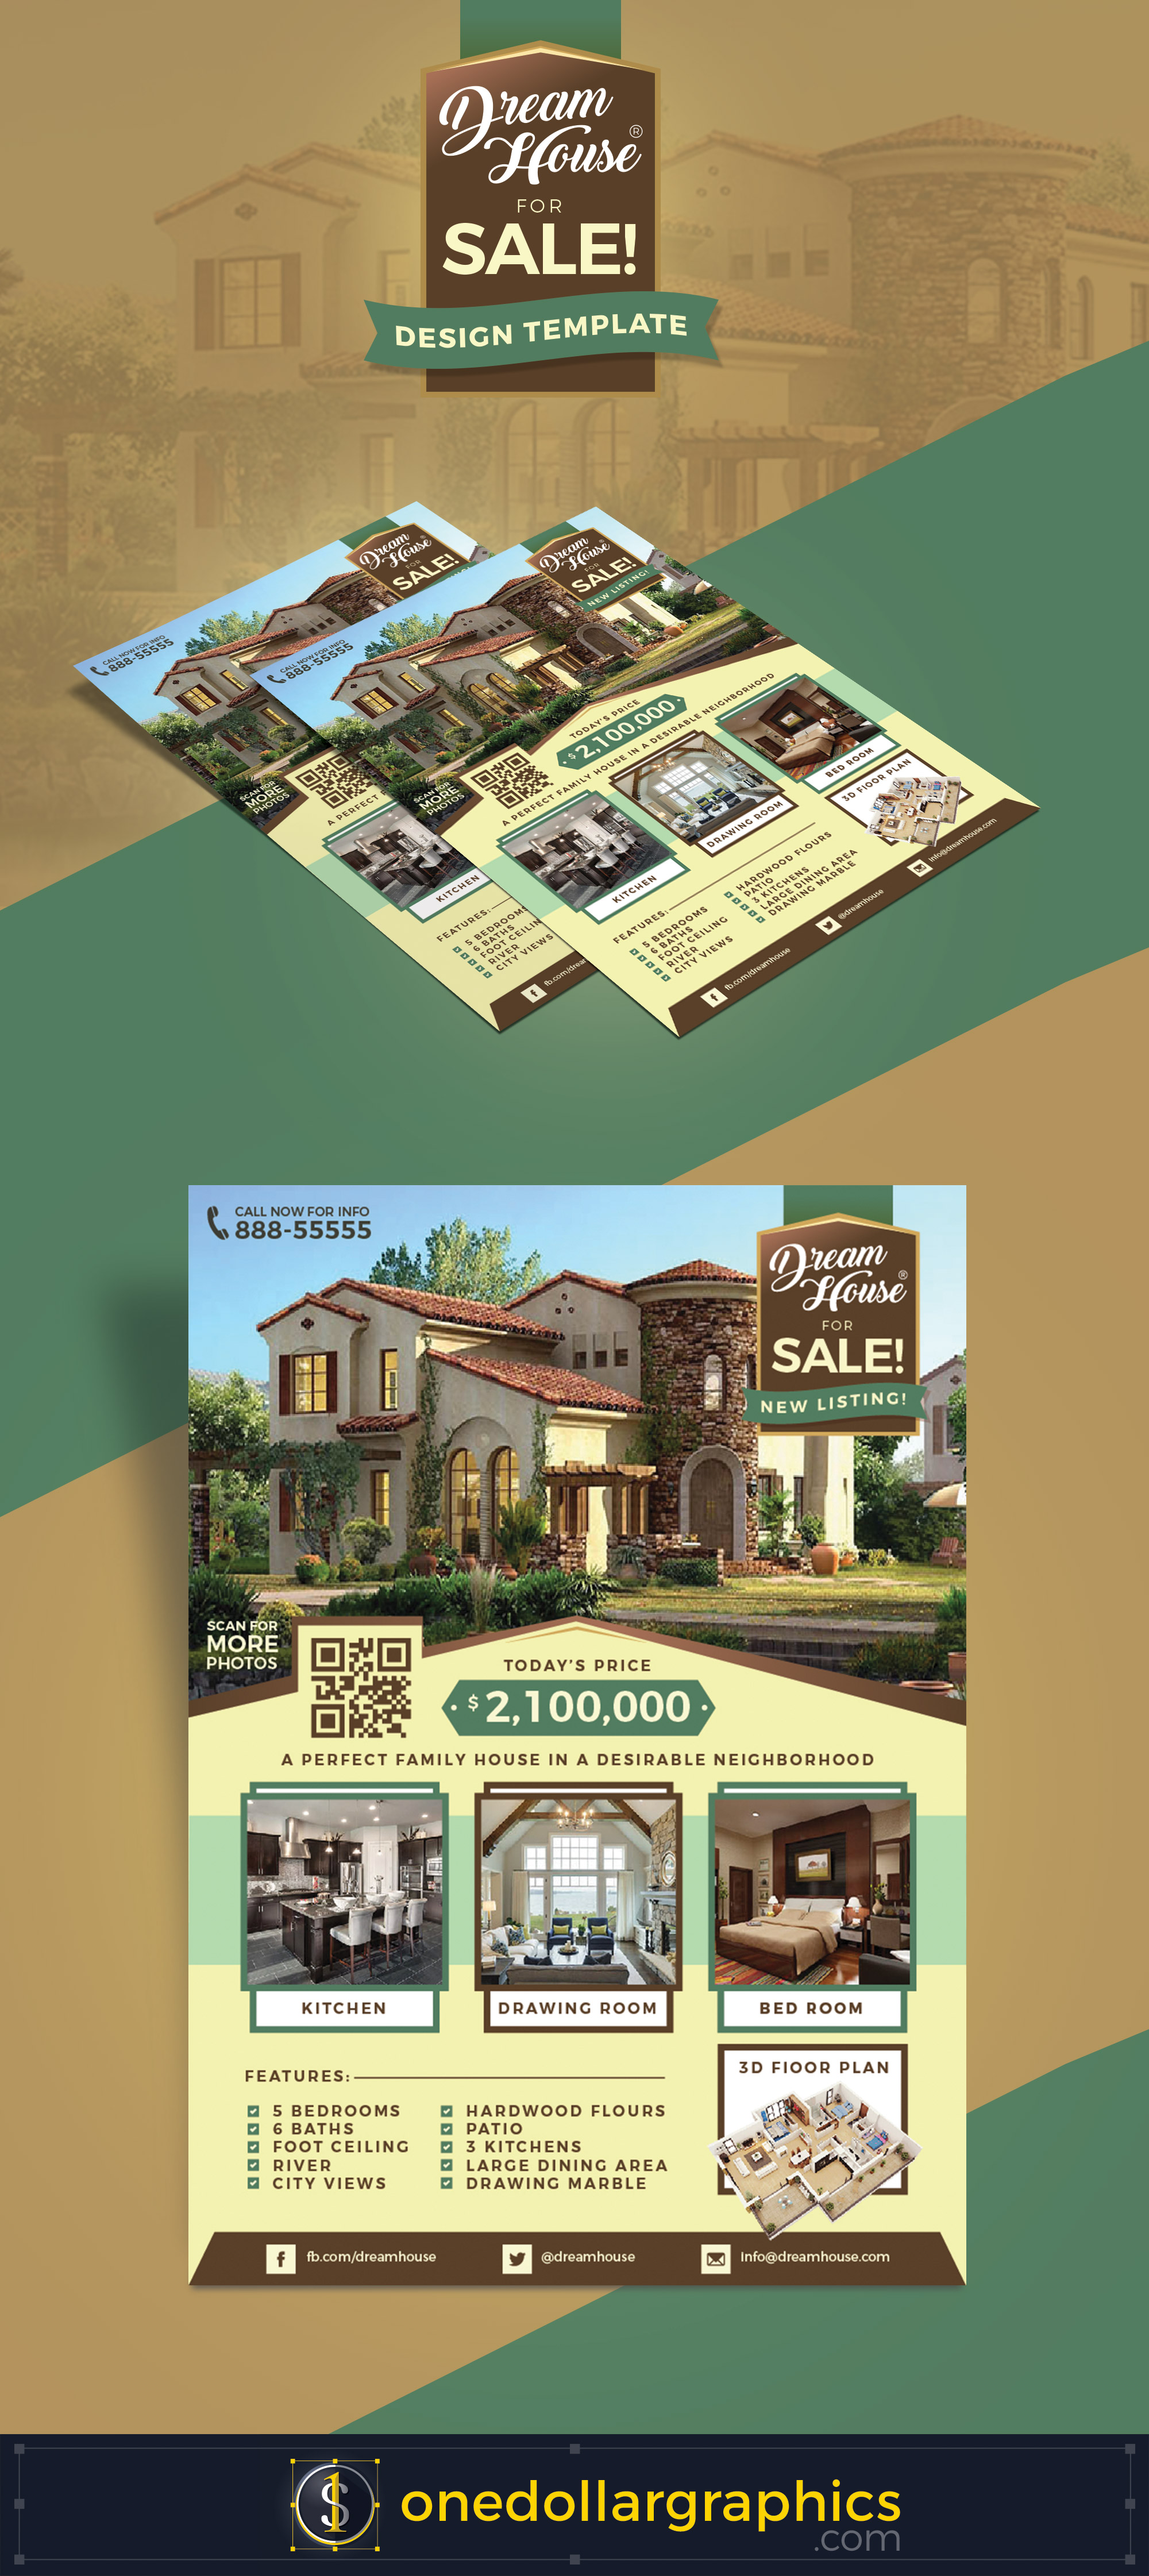 Real-Estate-House-For-Sale-Flyer-Design-Template-Ai-02